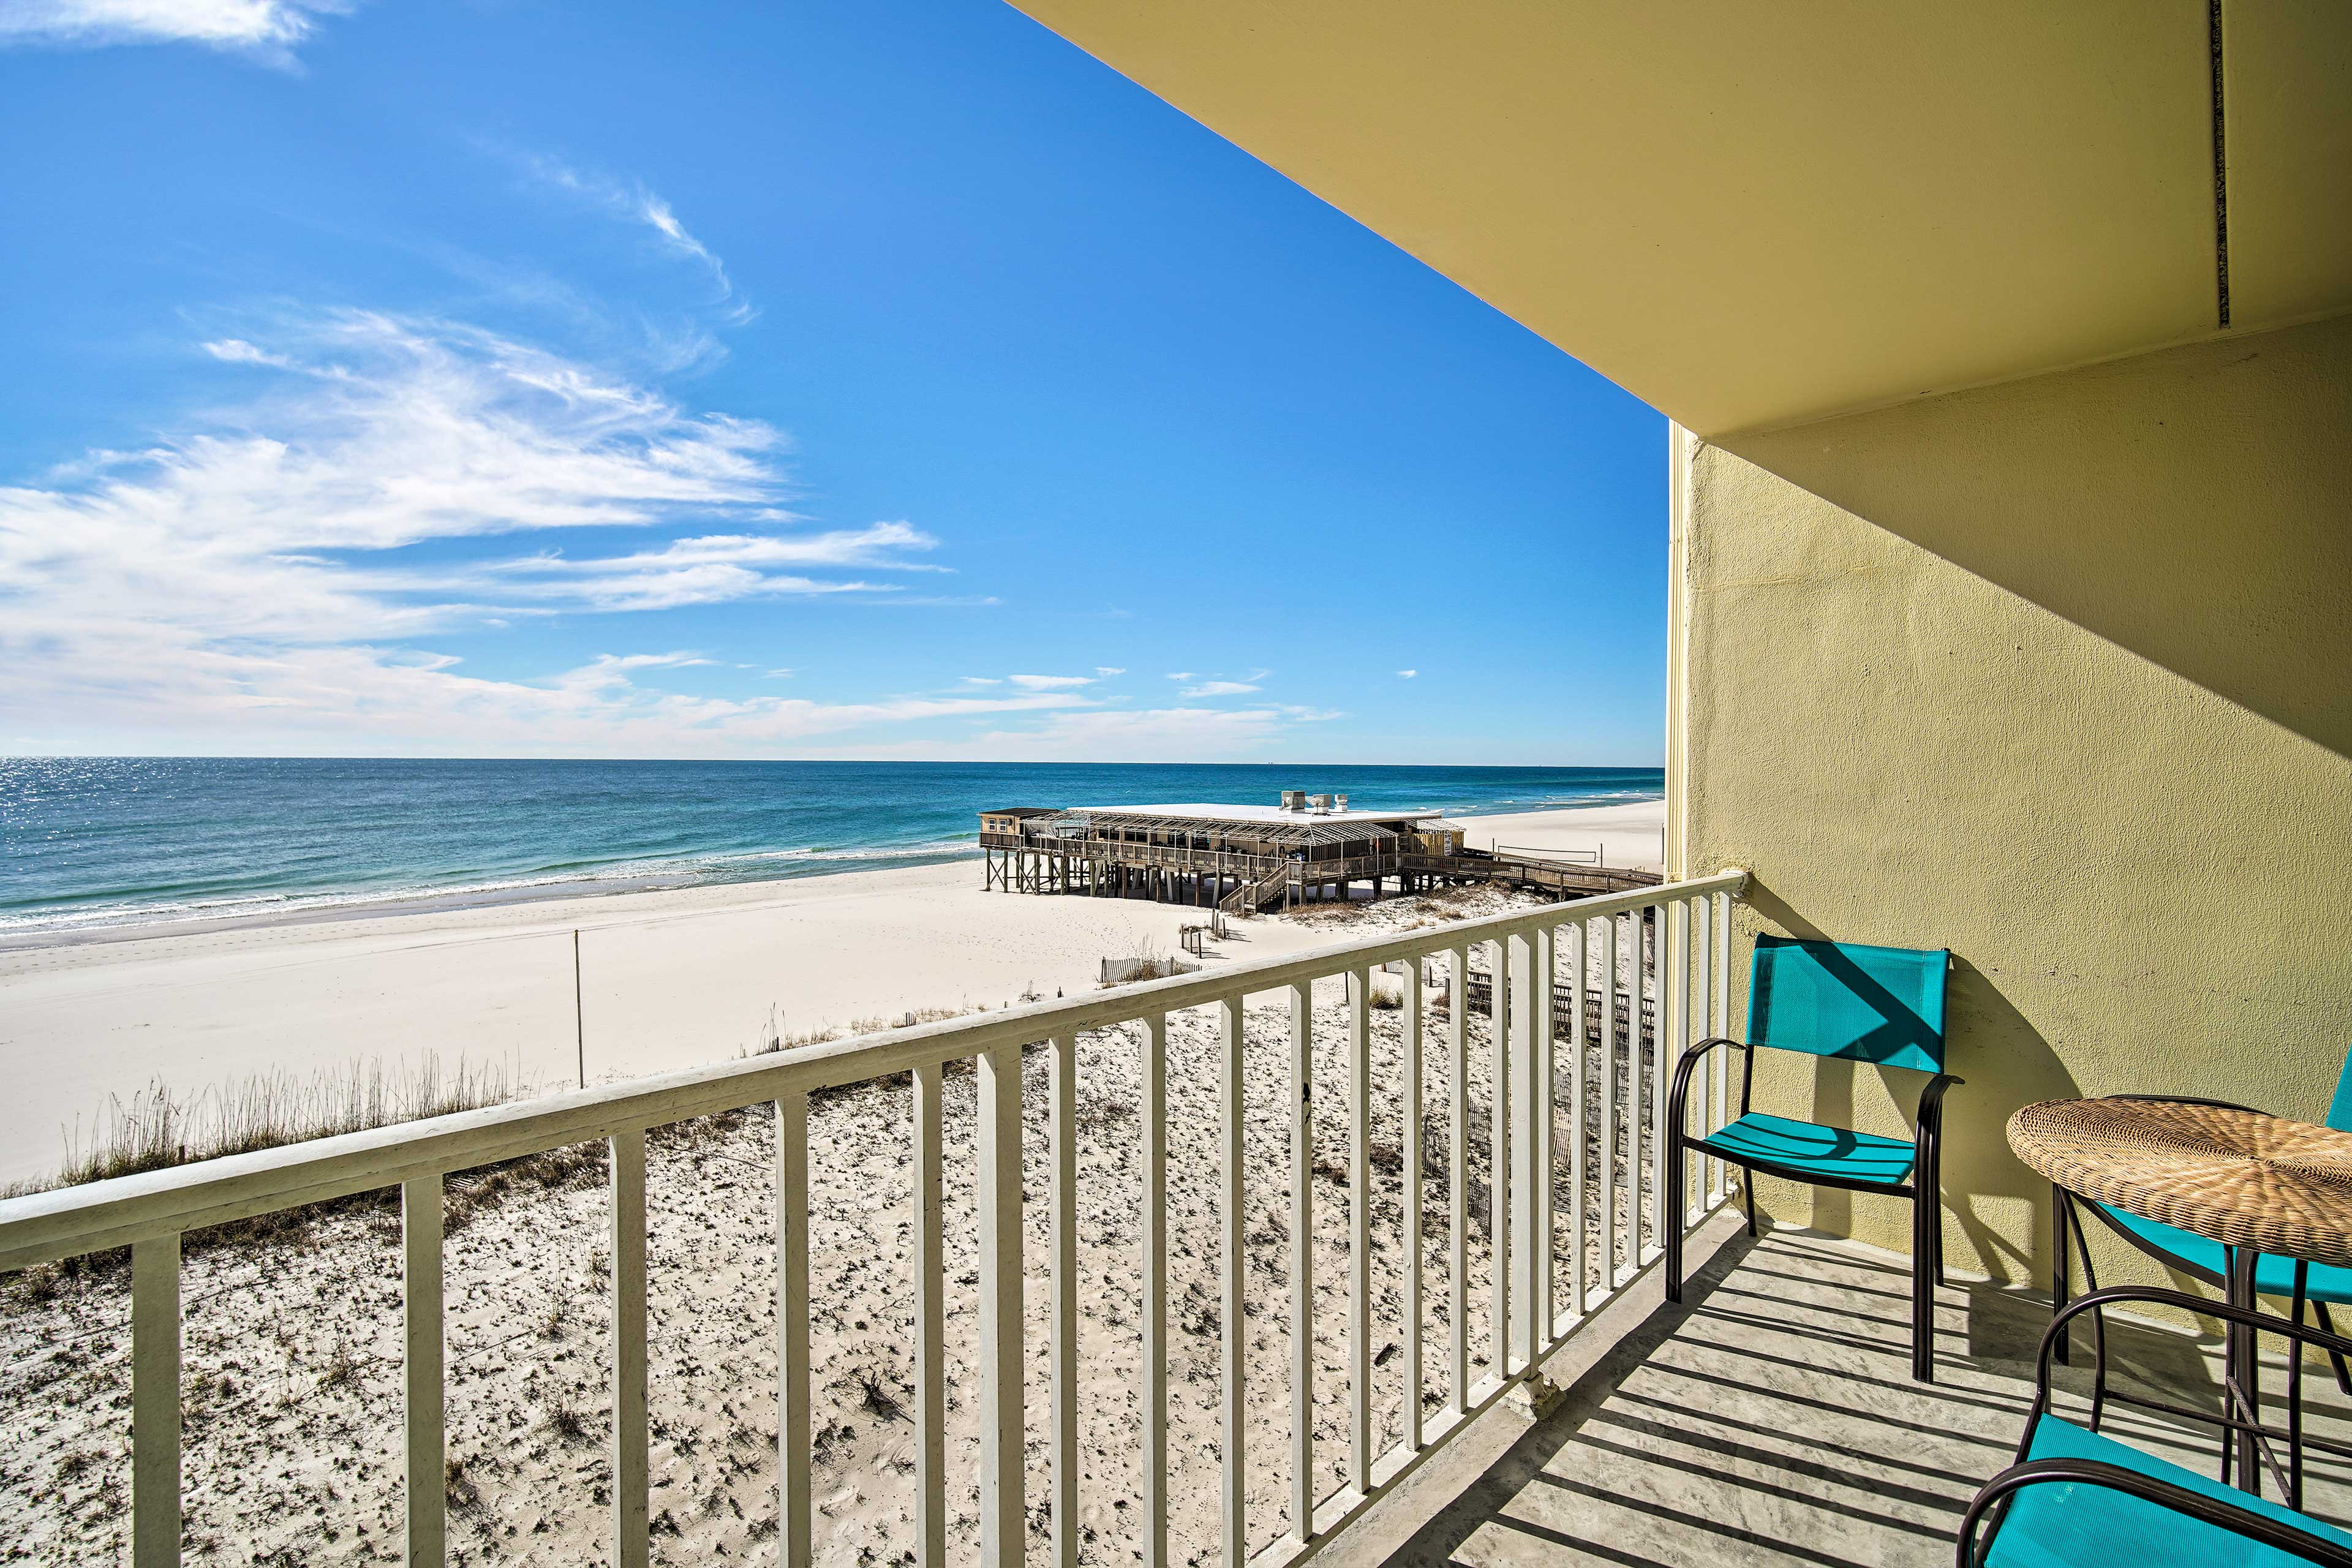 The 2-bed, 2-bath unit boasts a private ocean-view balcony.